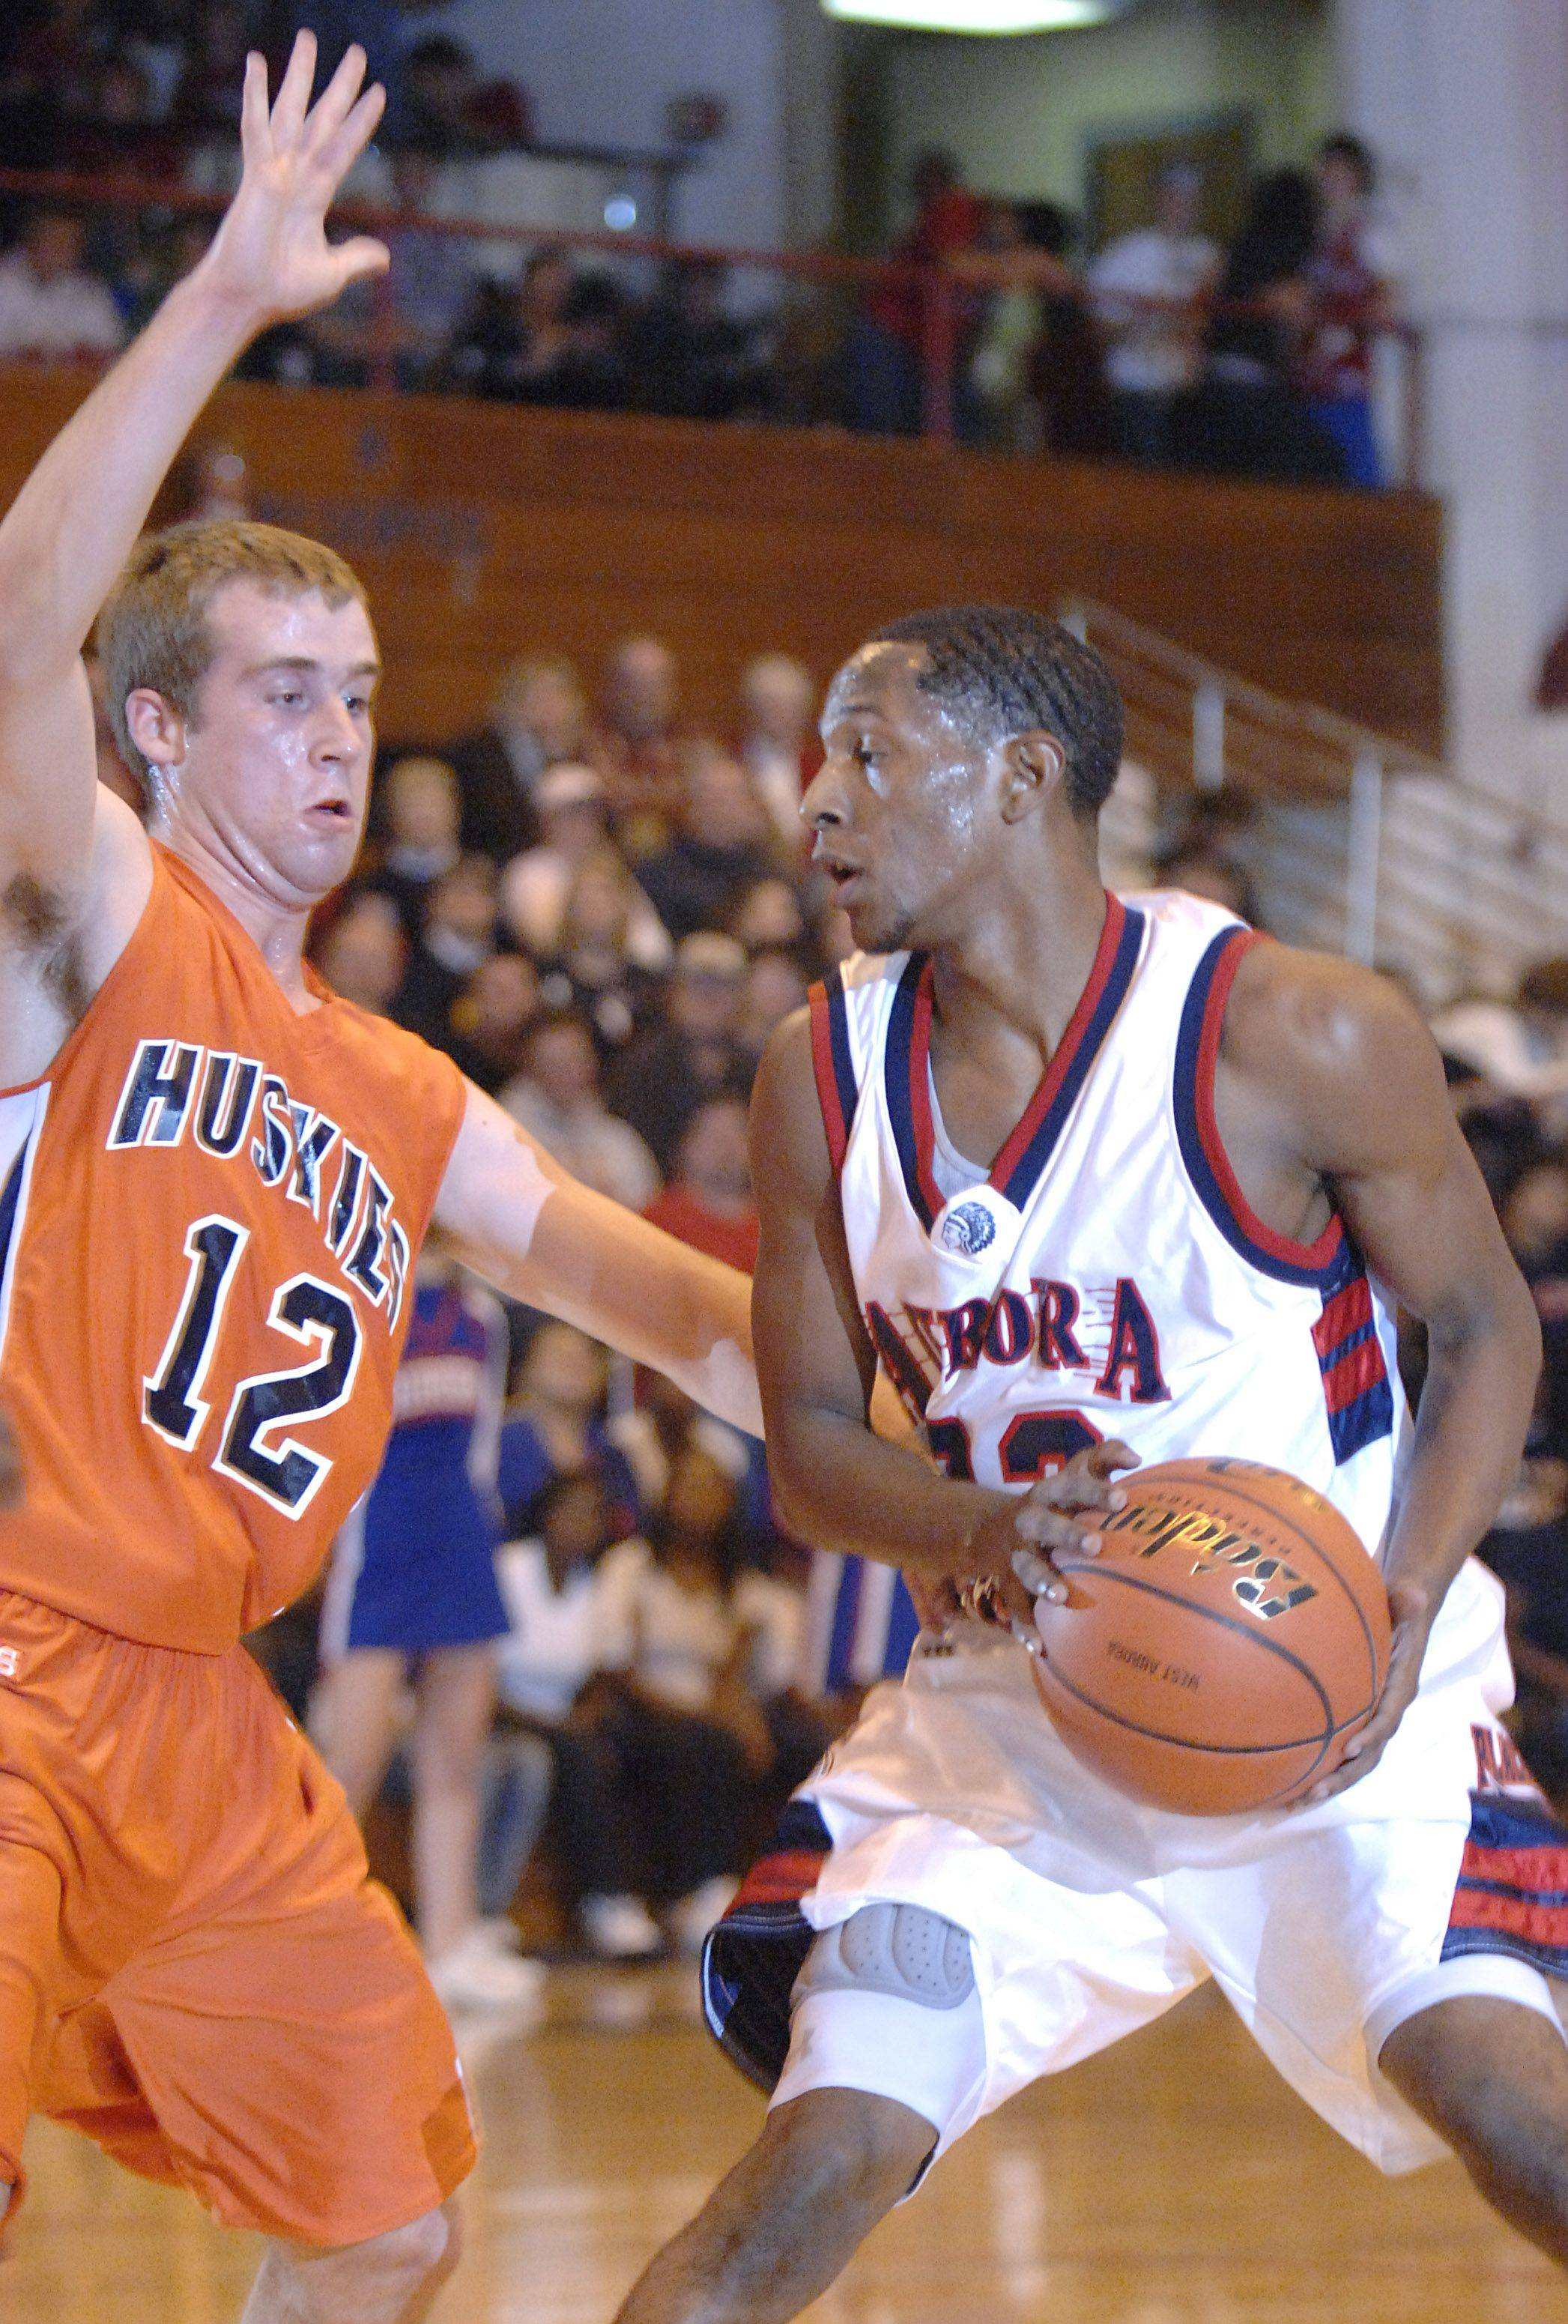 West Aurora's Brandon Hayes pivots around Naperville North's Nick Buege's block in the first half.